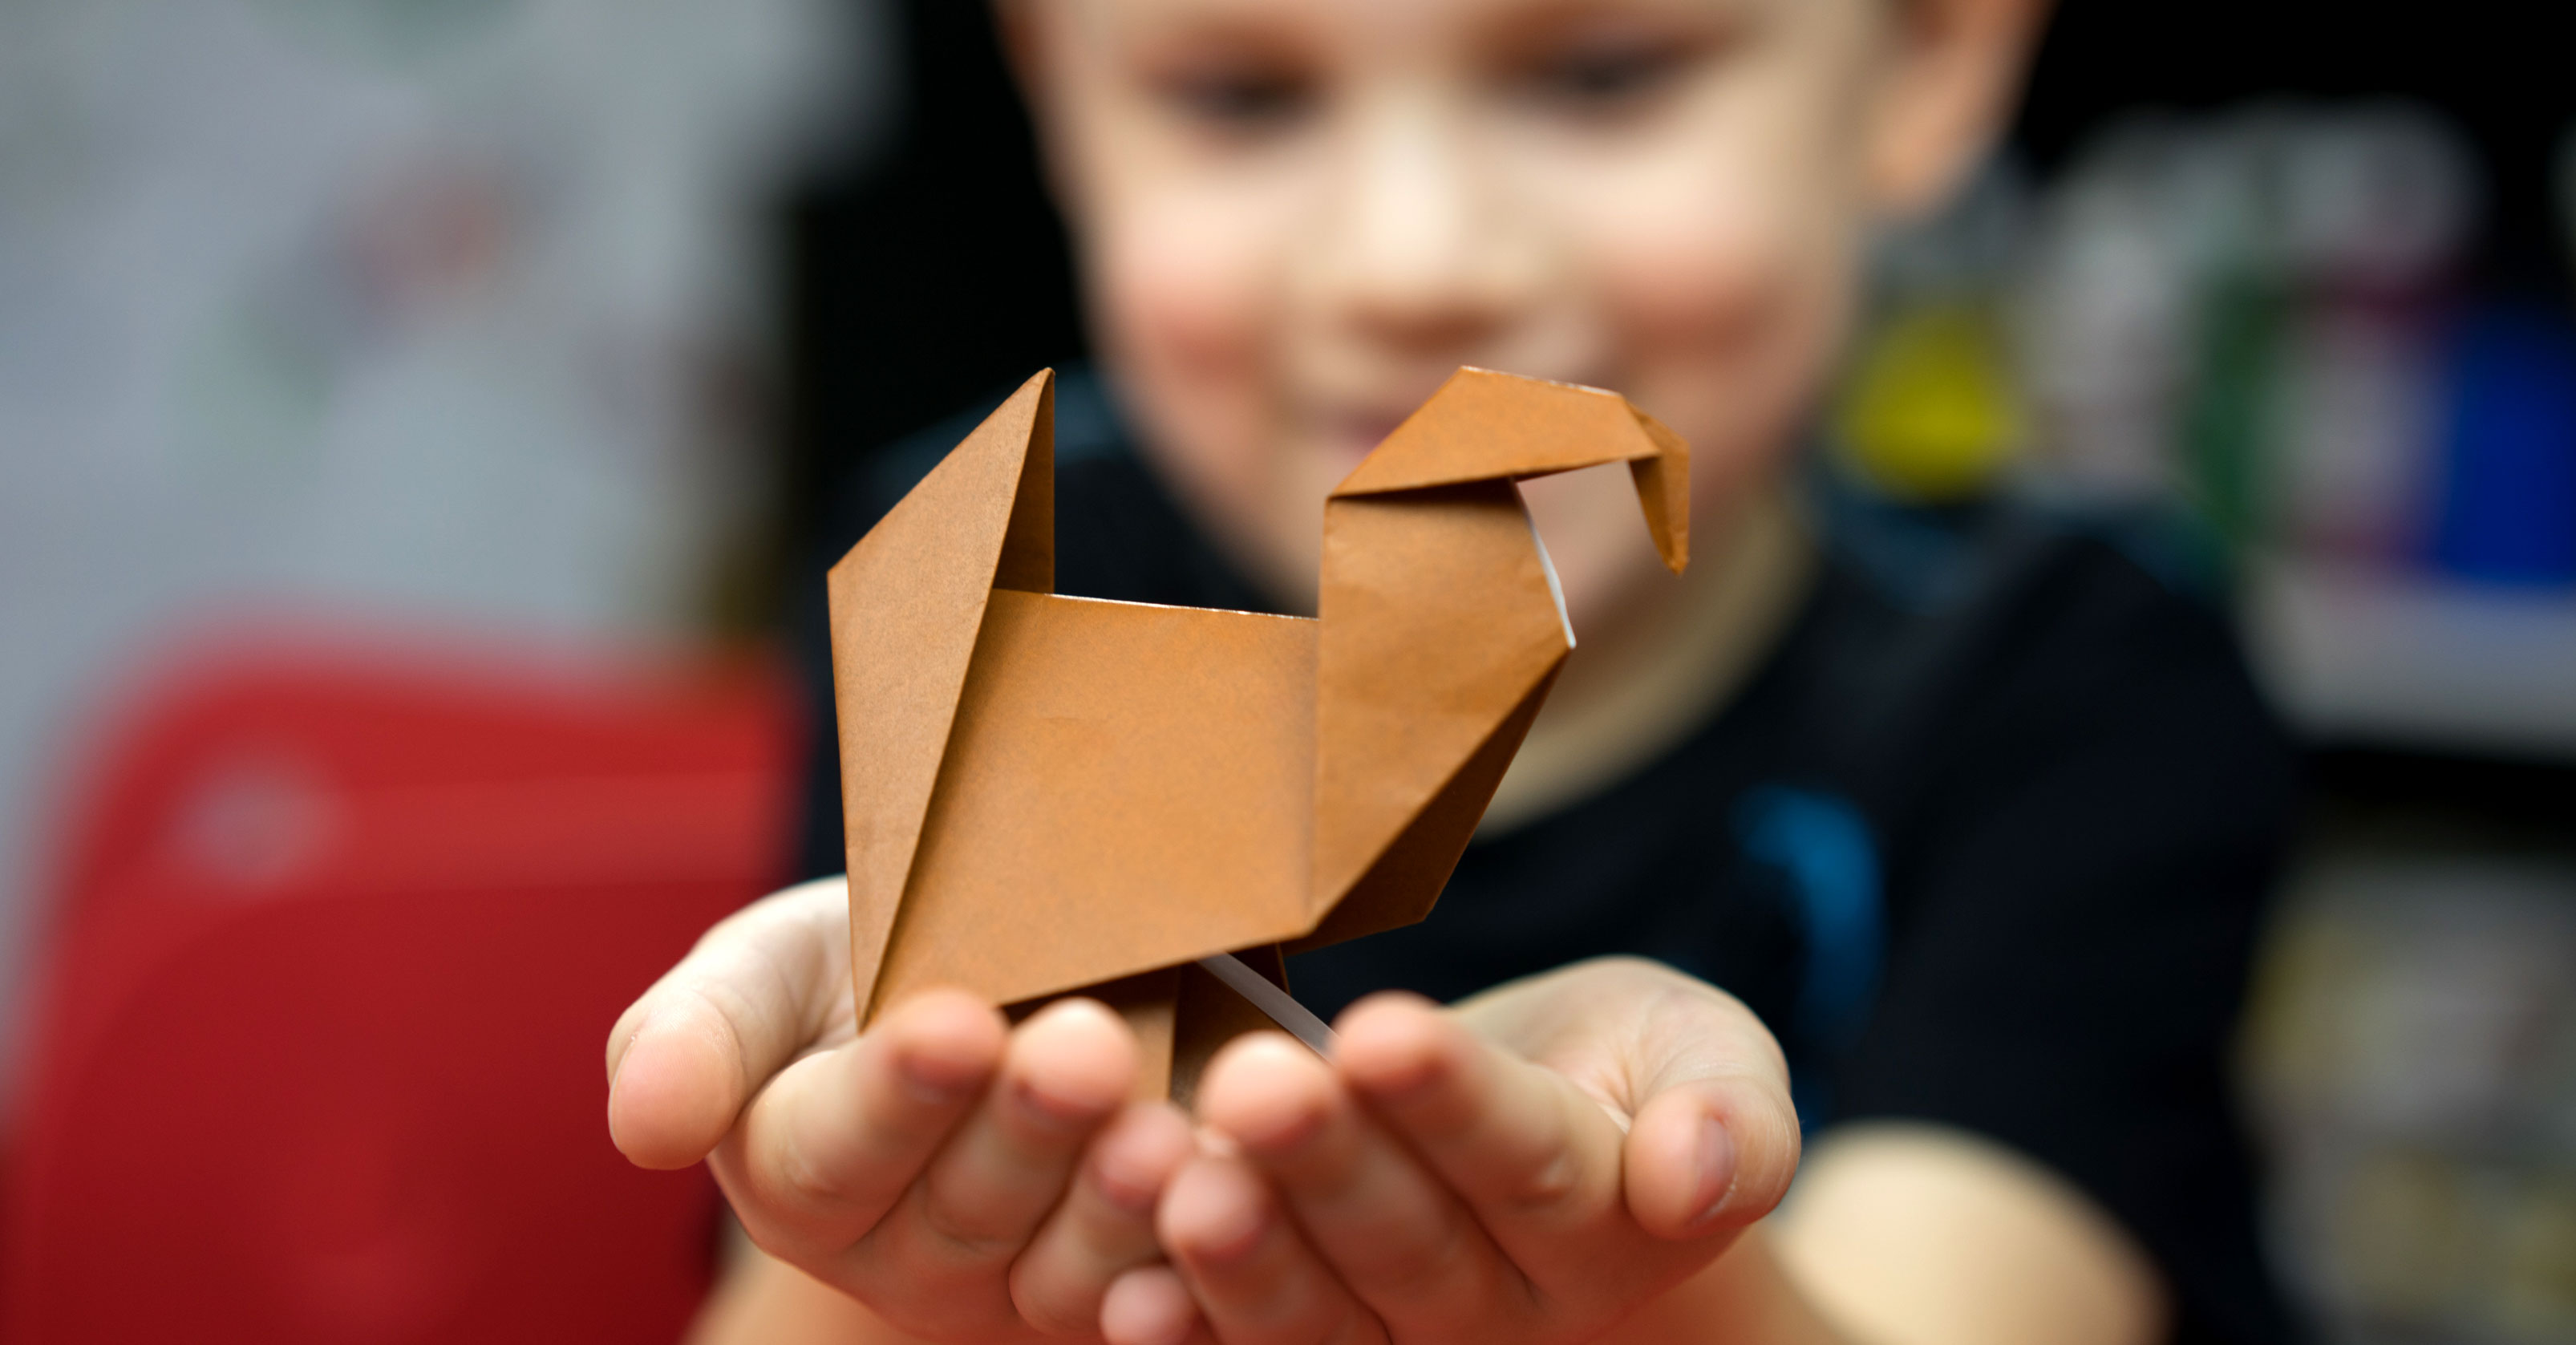 Origami for kids archives art for kids hub how to fold an origami turkey jeuxipadfo Choice Image